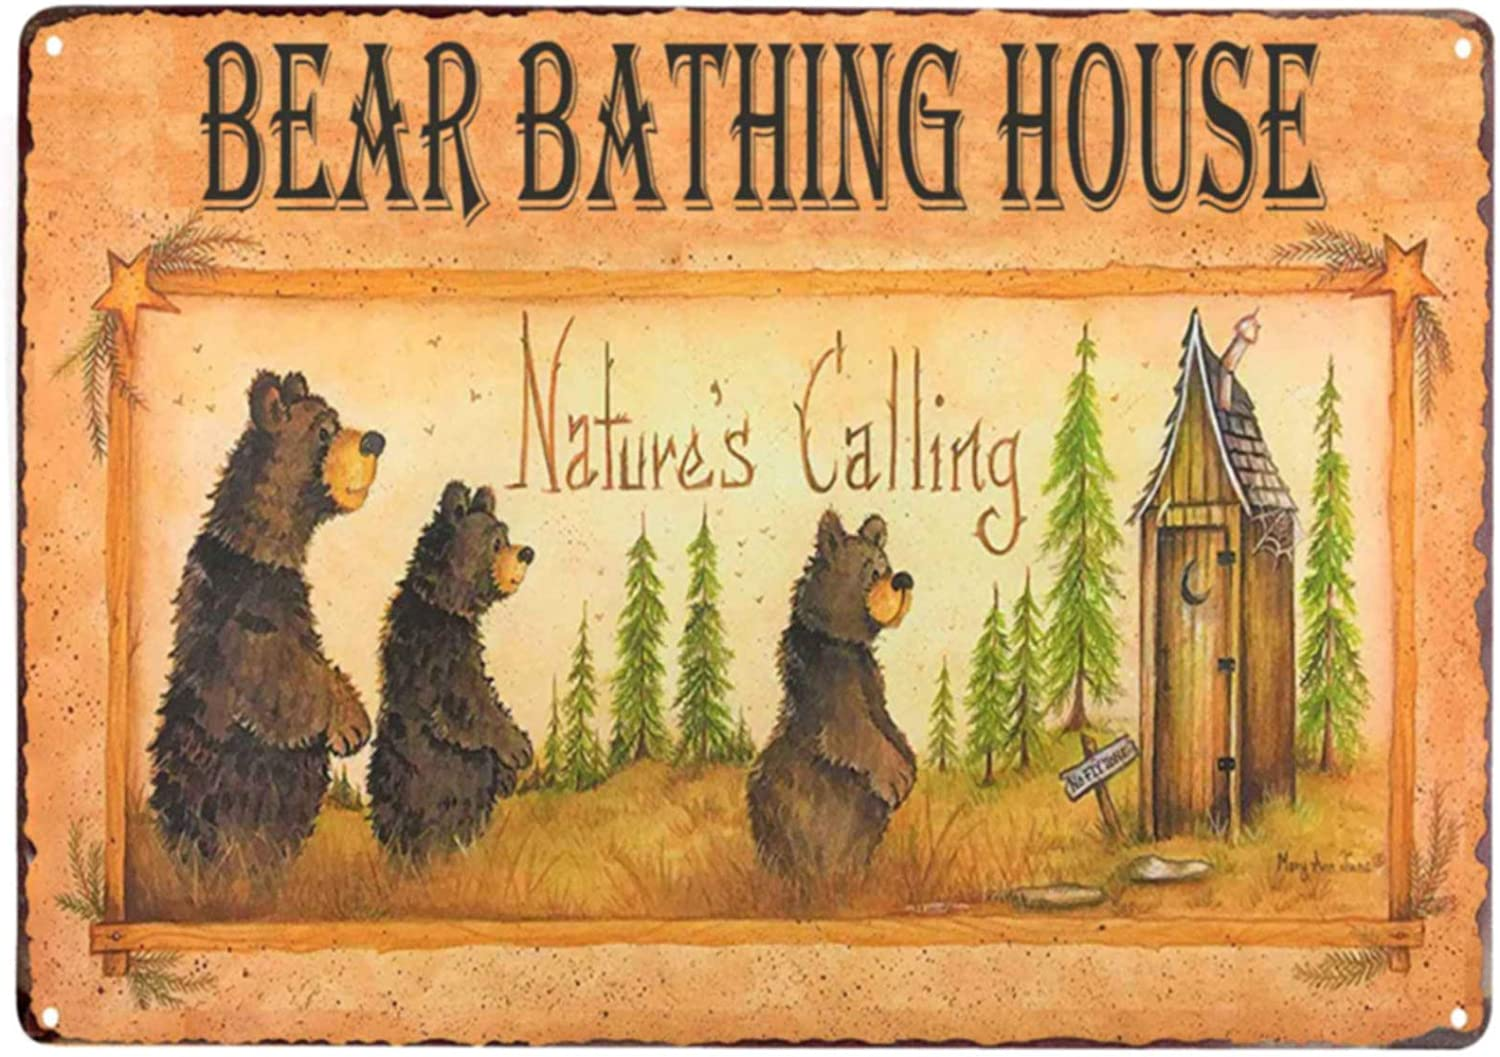 Bear Bathing House Vintage Metal Tin Sign Wall Art Decor for Living Room Home Coffee Bar Signs Gifts Decoration 8X12Inch